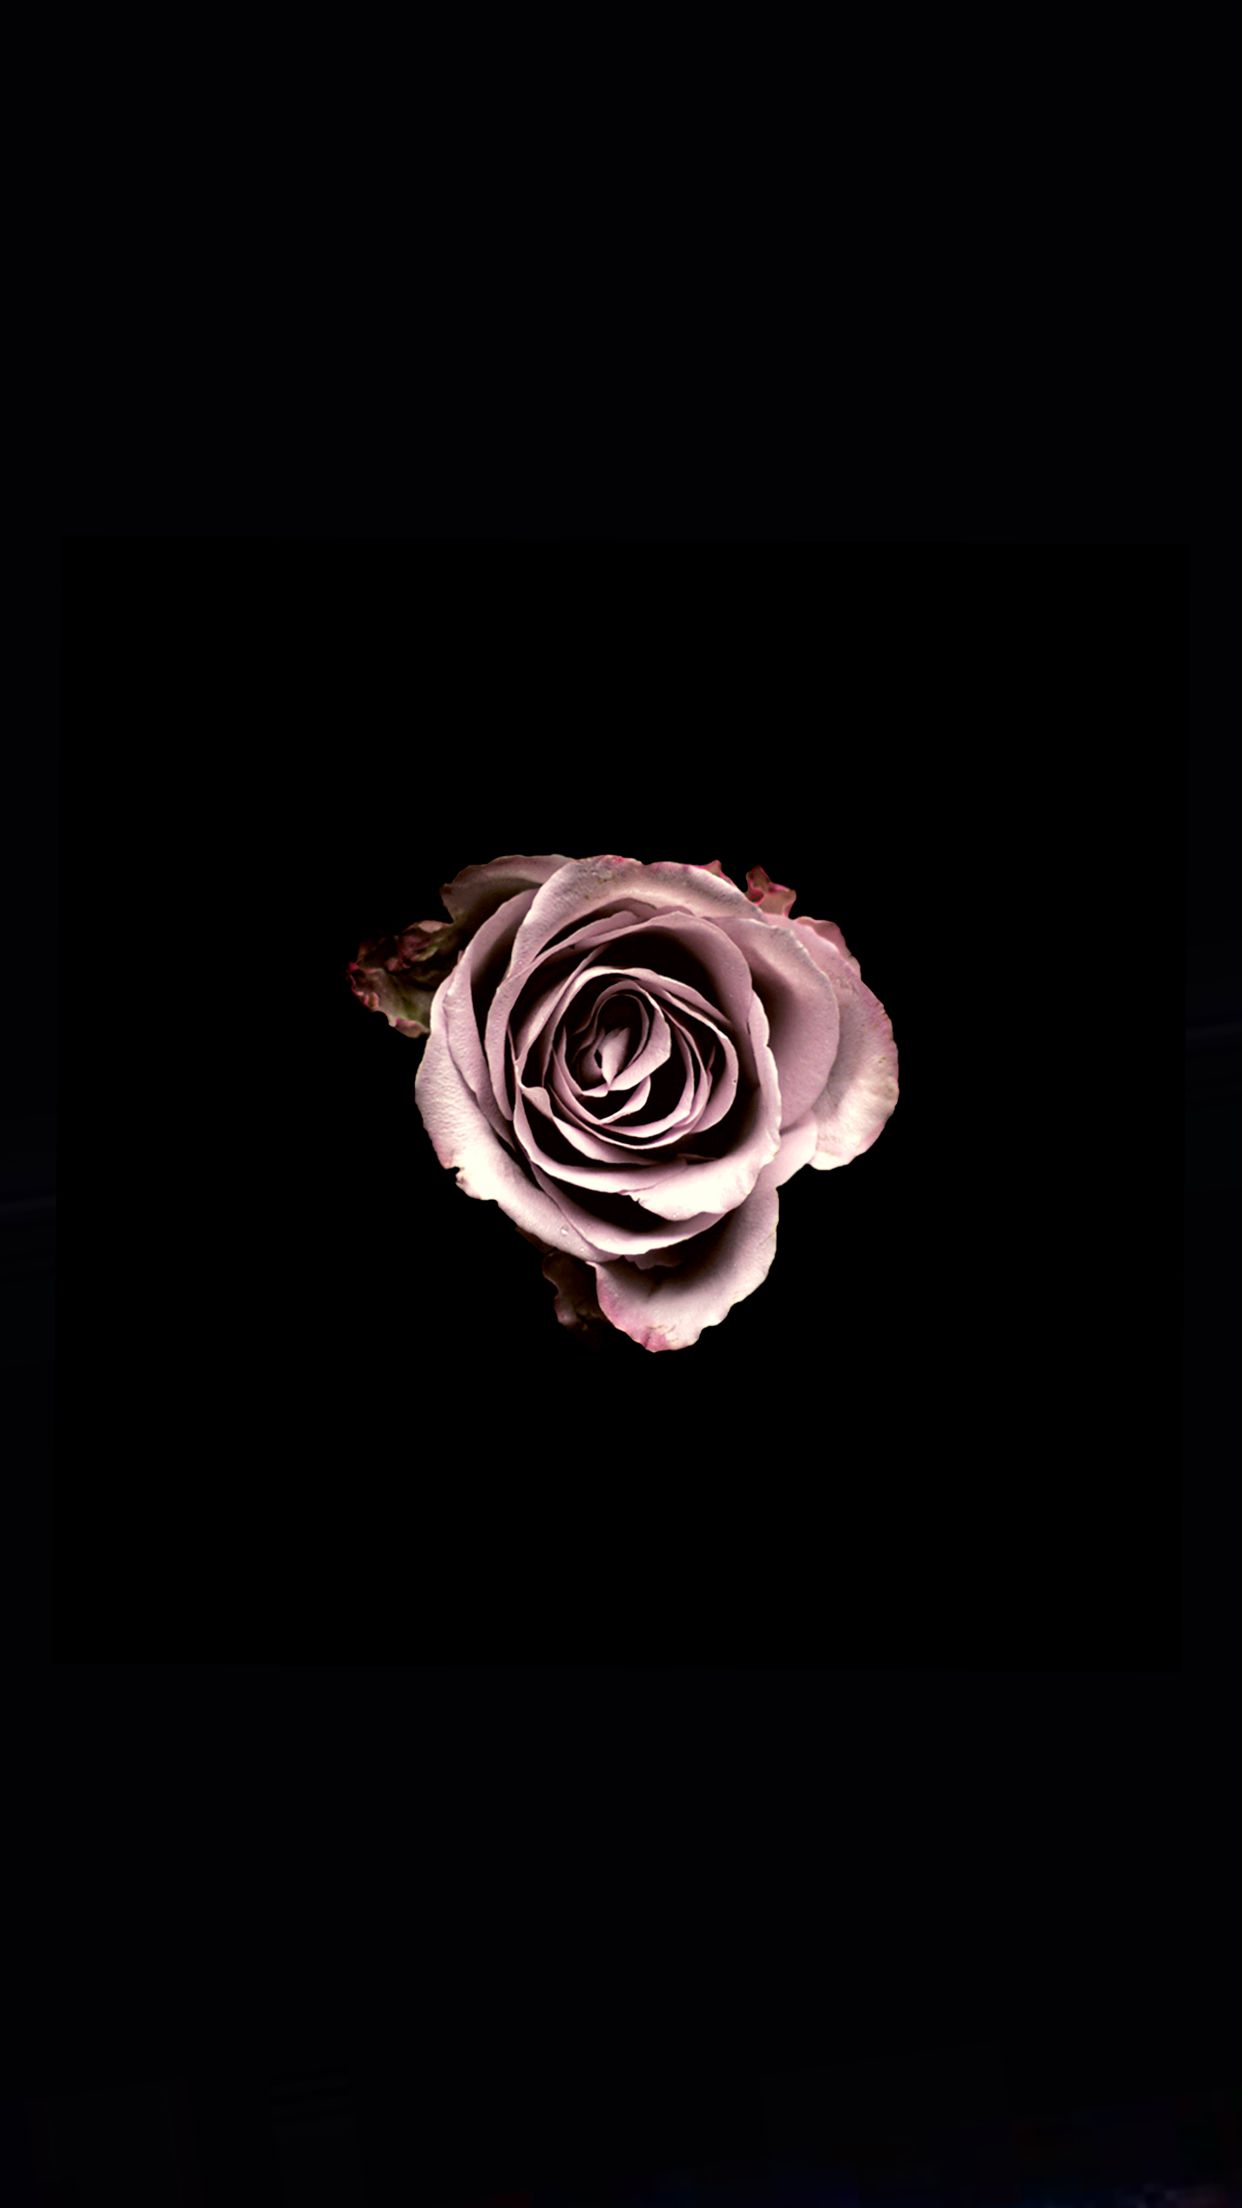 Rose Darkbackground Dark Black